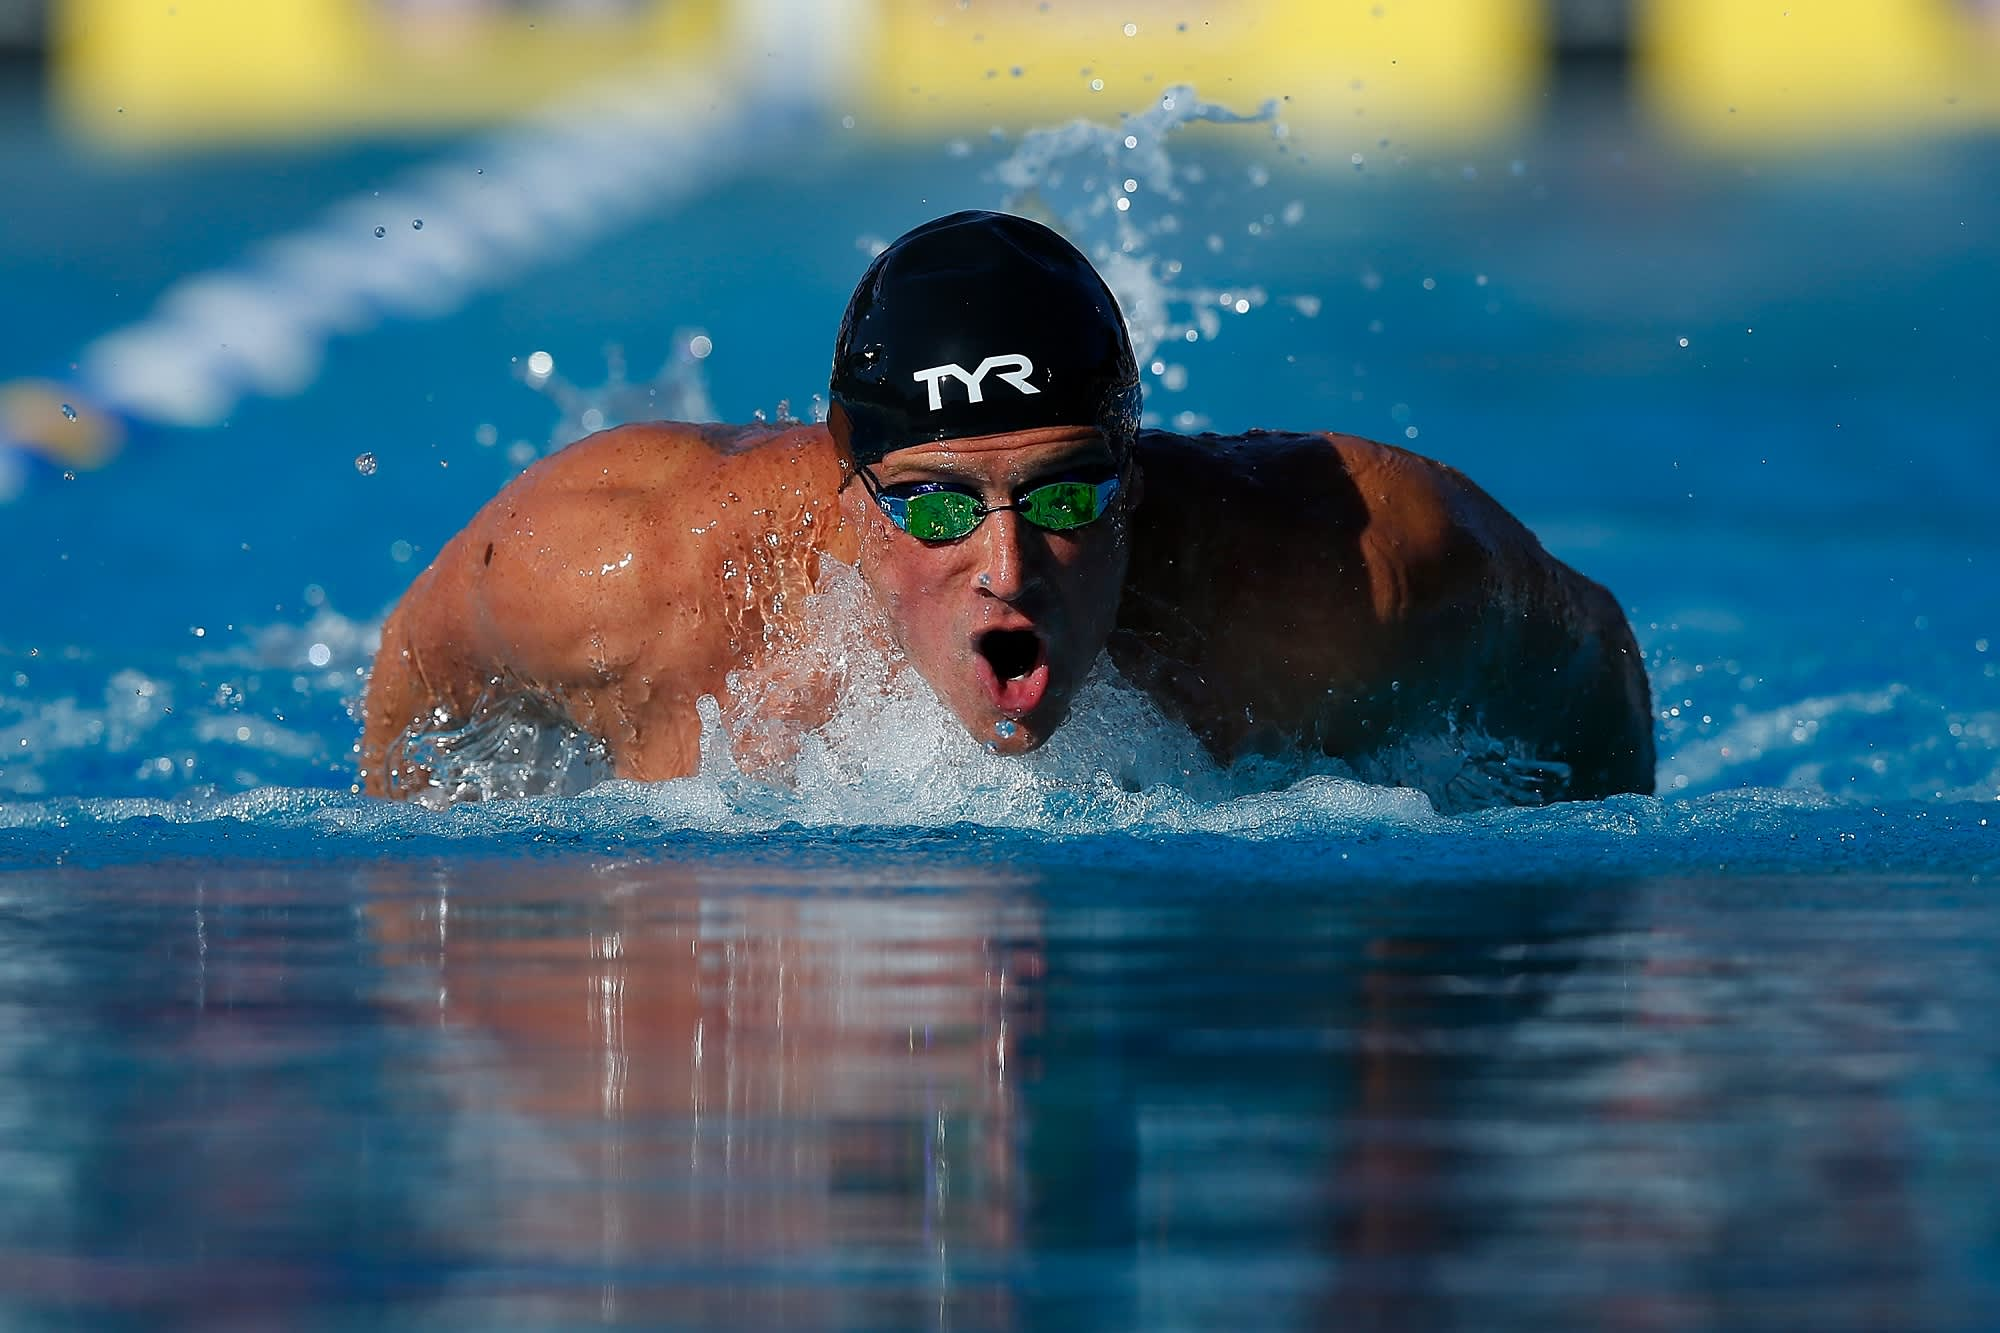 Olympic gold medalist Ryan Lochte's daily routine includes 5 hours of workouts and 4,000 calories